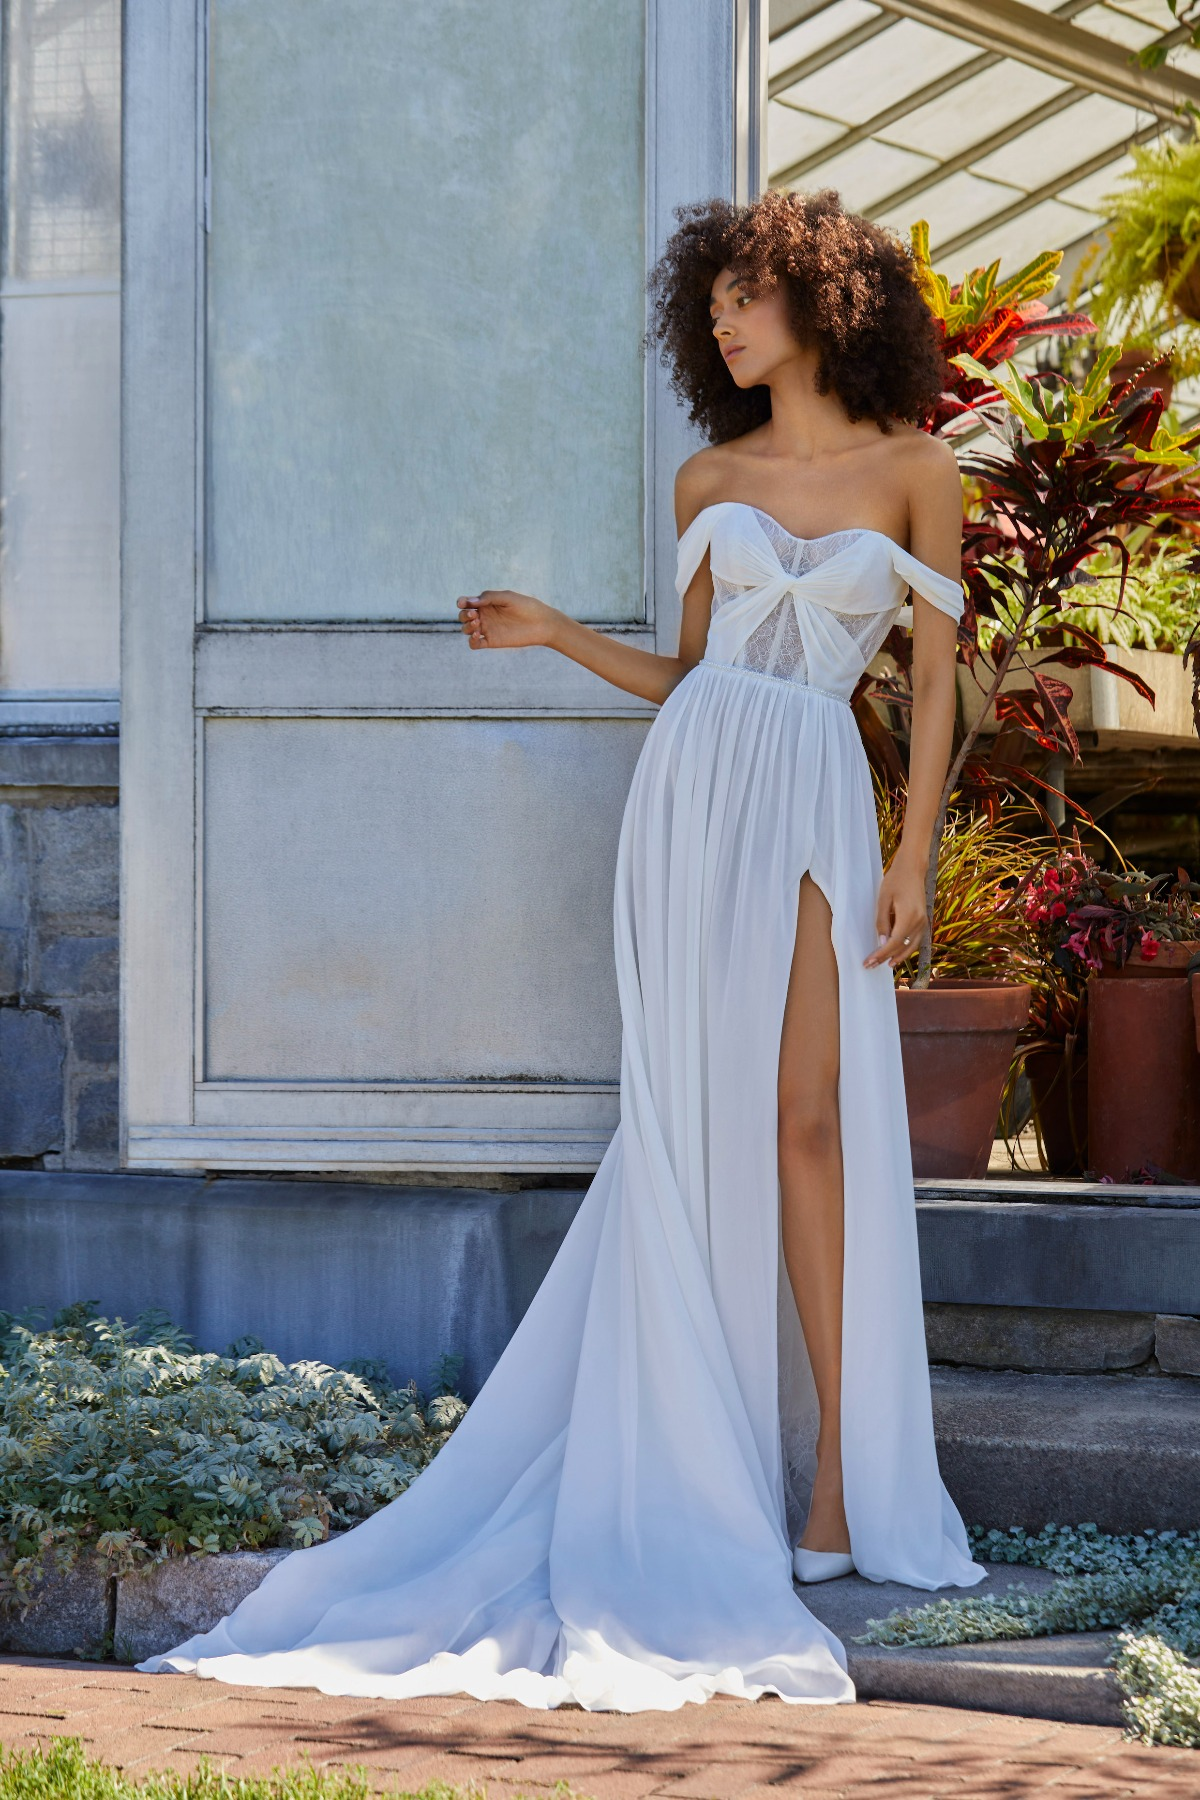 Ines by Ines Di Santo Fall 2022 Collection